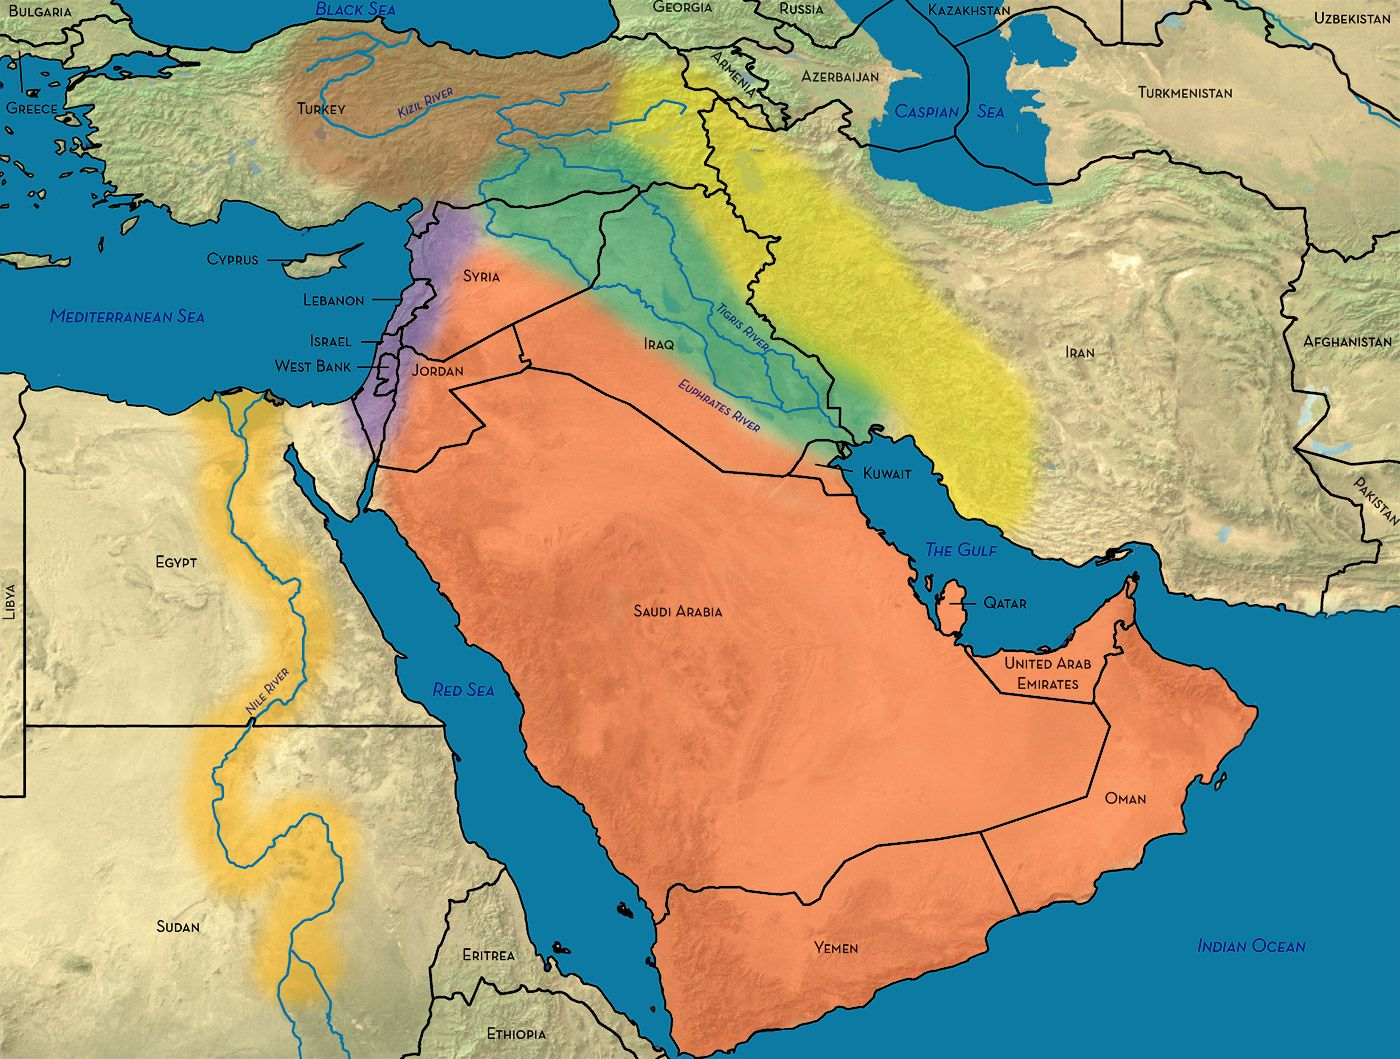 This Map Shows The Different Waterways In The Middle East